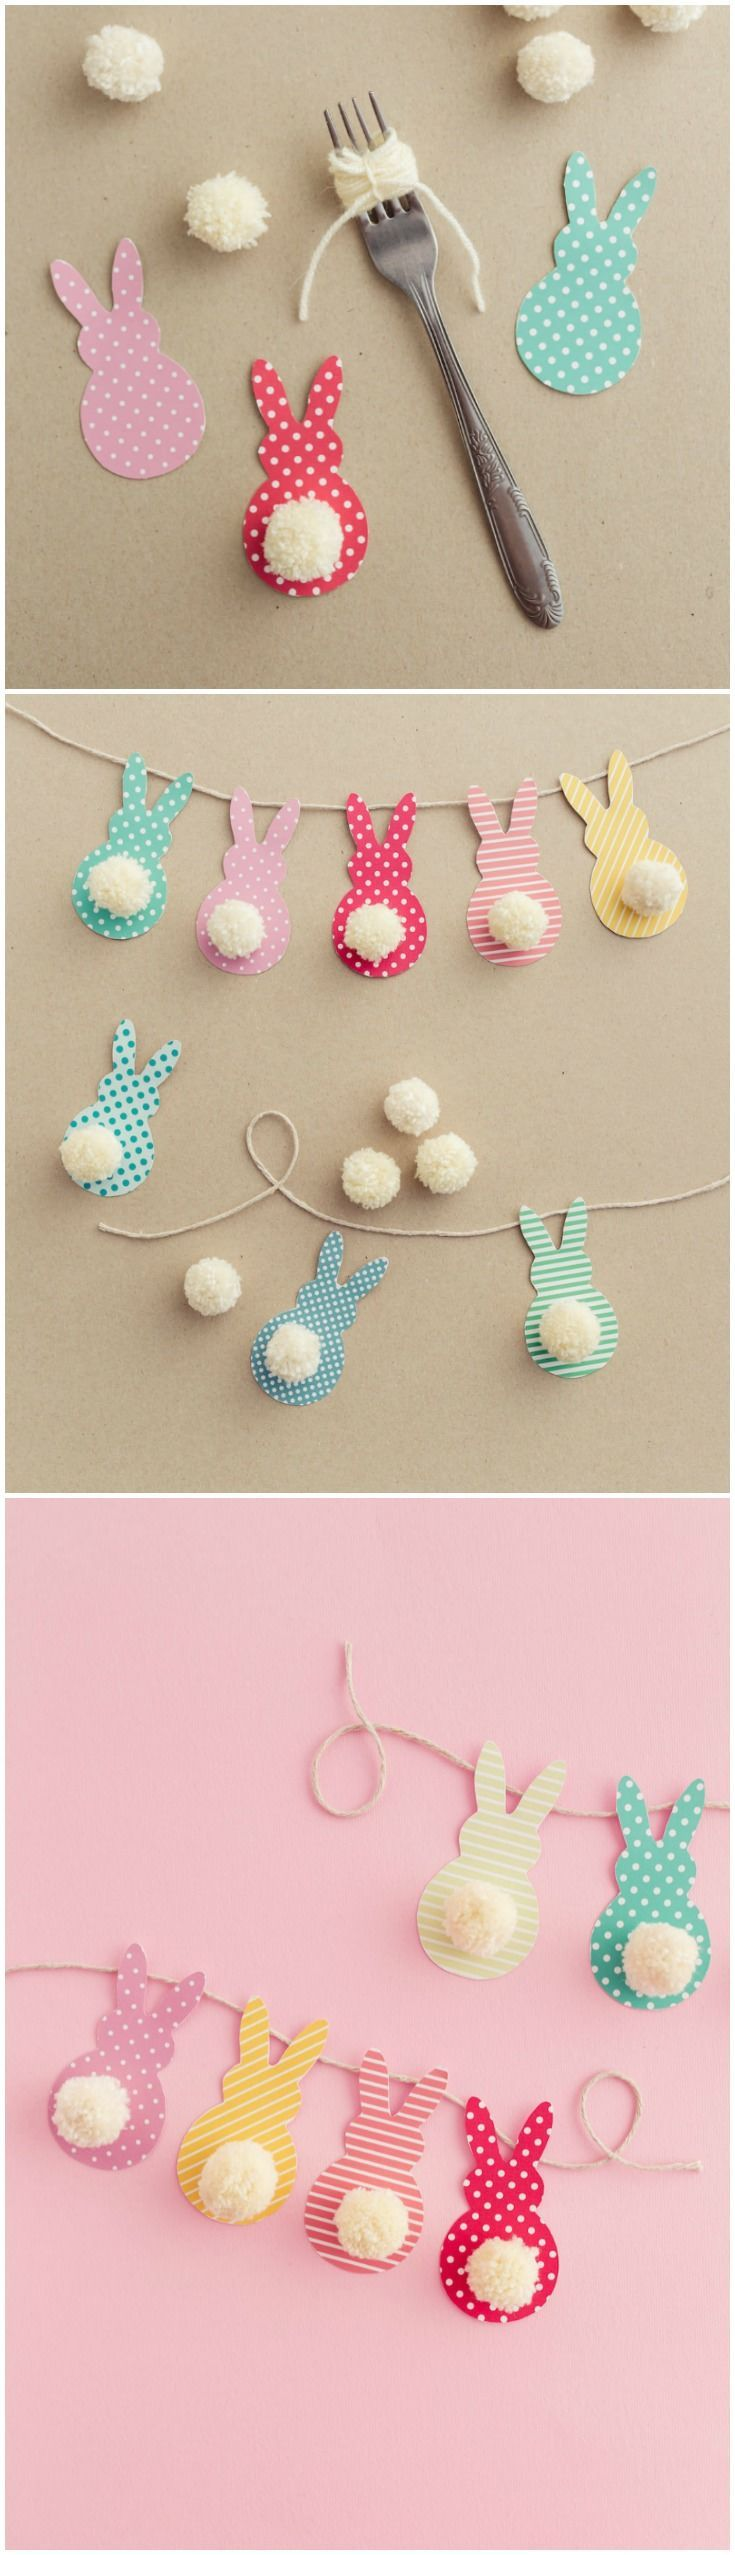 This colorful DIY Easter garland is so easy to make with scrapbook paper (or fabric) and yarn! Both kids and adults will love making this together. Hang this simple decoration on your mantel - it makes me happy every time I look at it! via @diy_candy